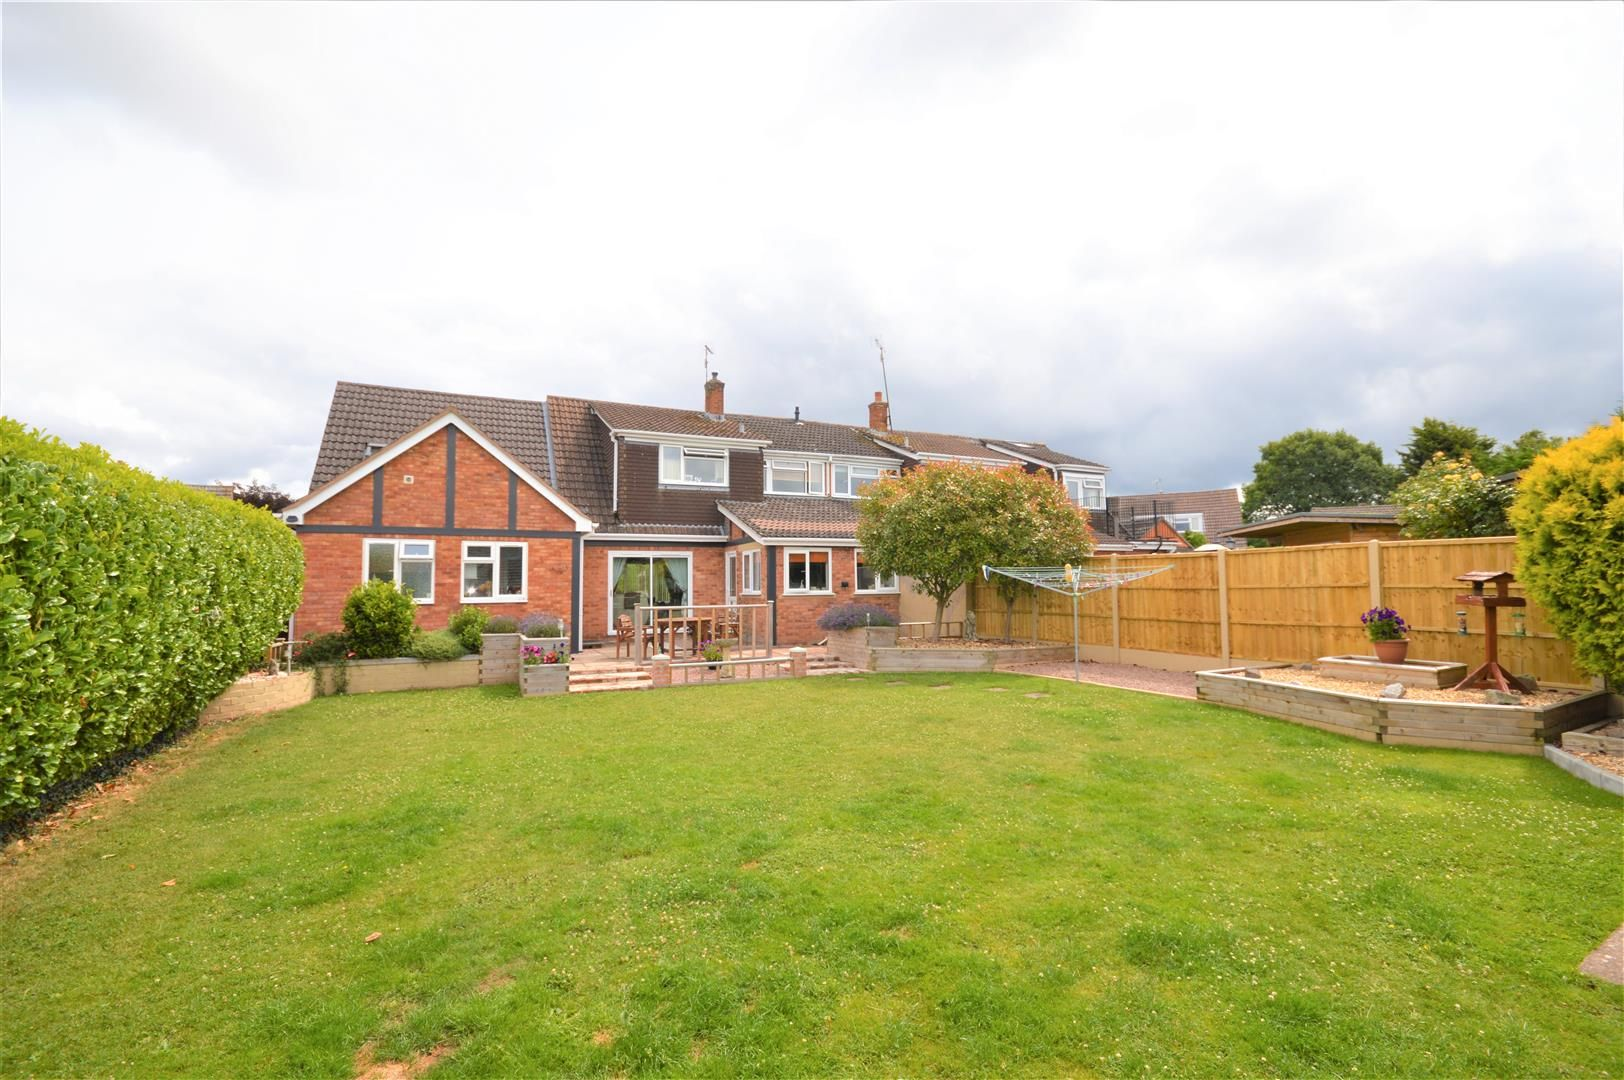 4 bed semi-detached for sale in Clehonger  - Property Image 2